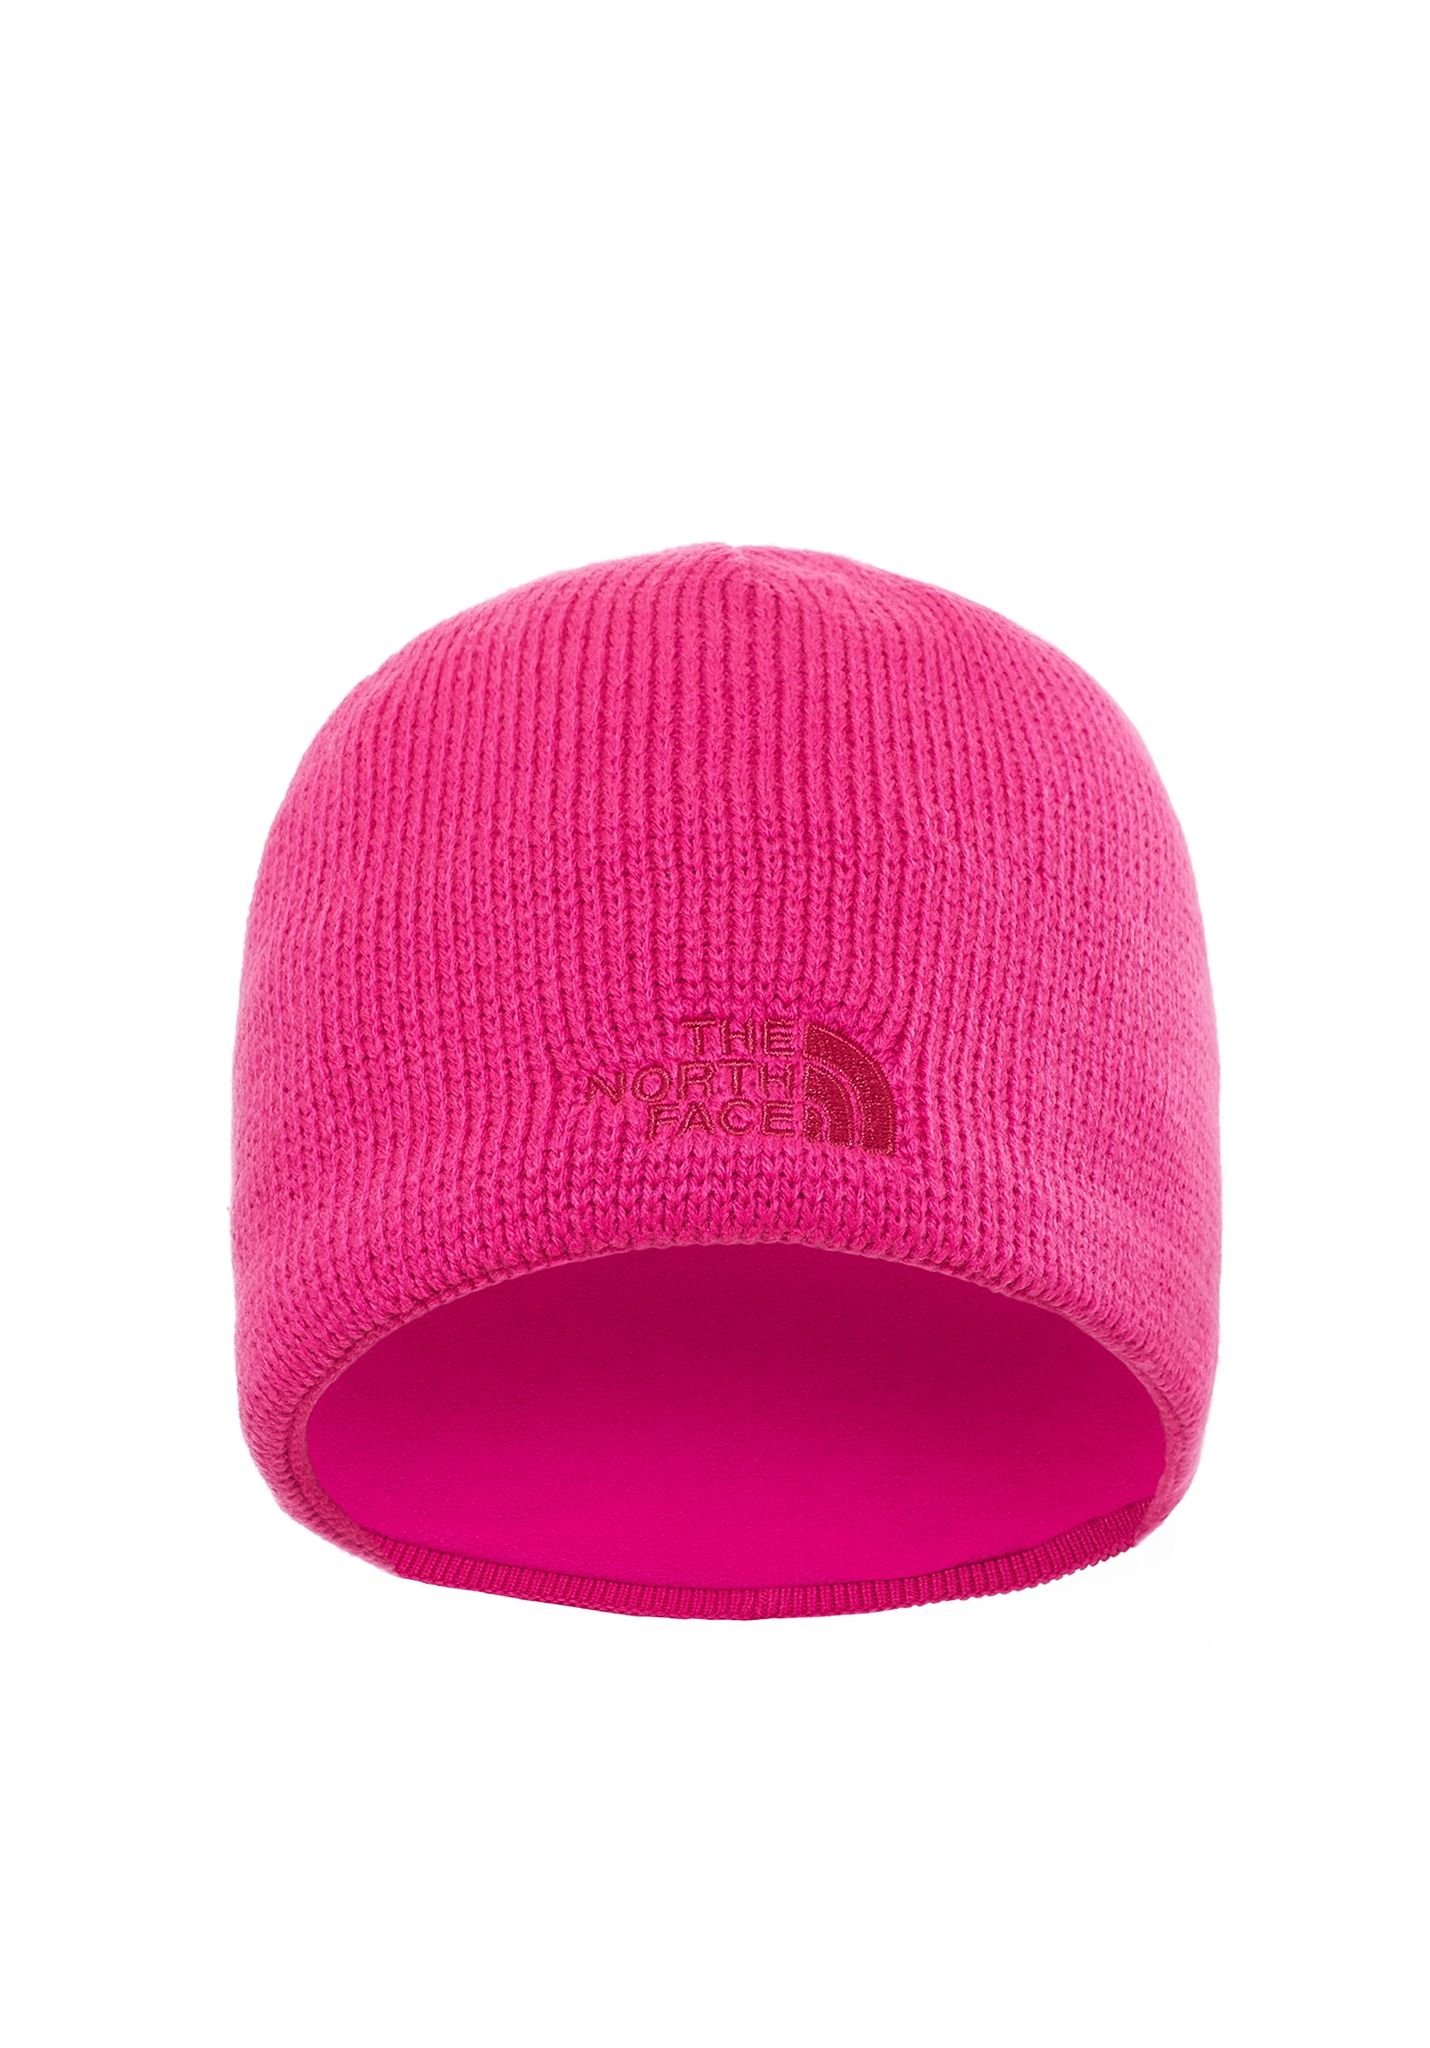 THE NORTH FACE Bones - Beanie - Pink - Planet Sports 4fba8a793ff